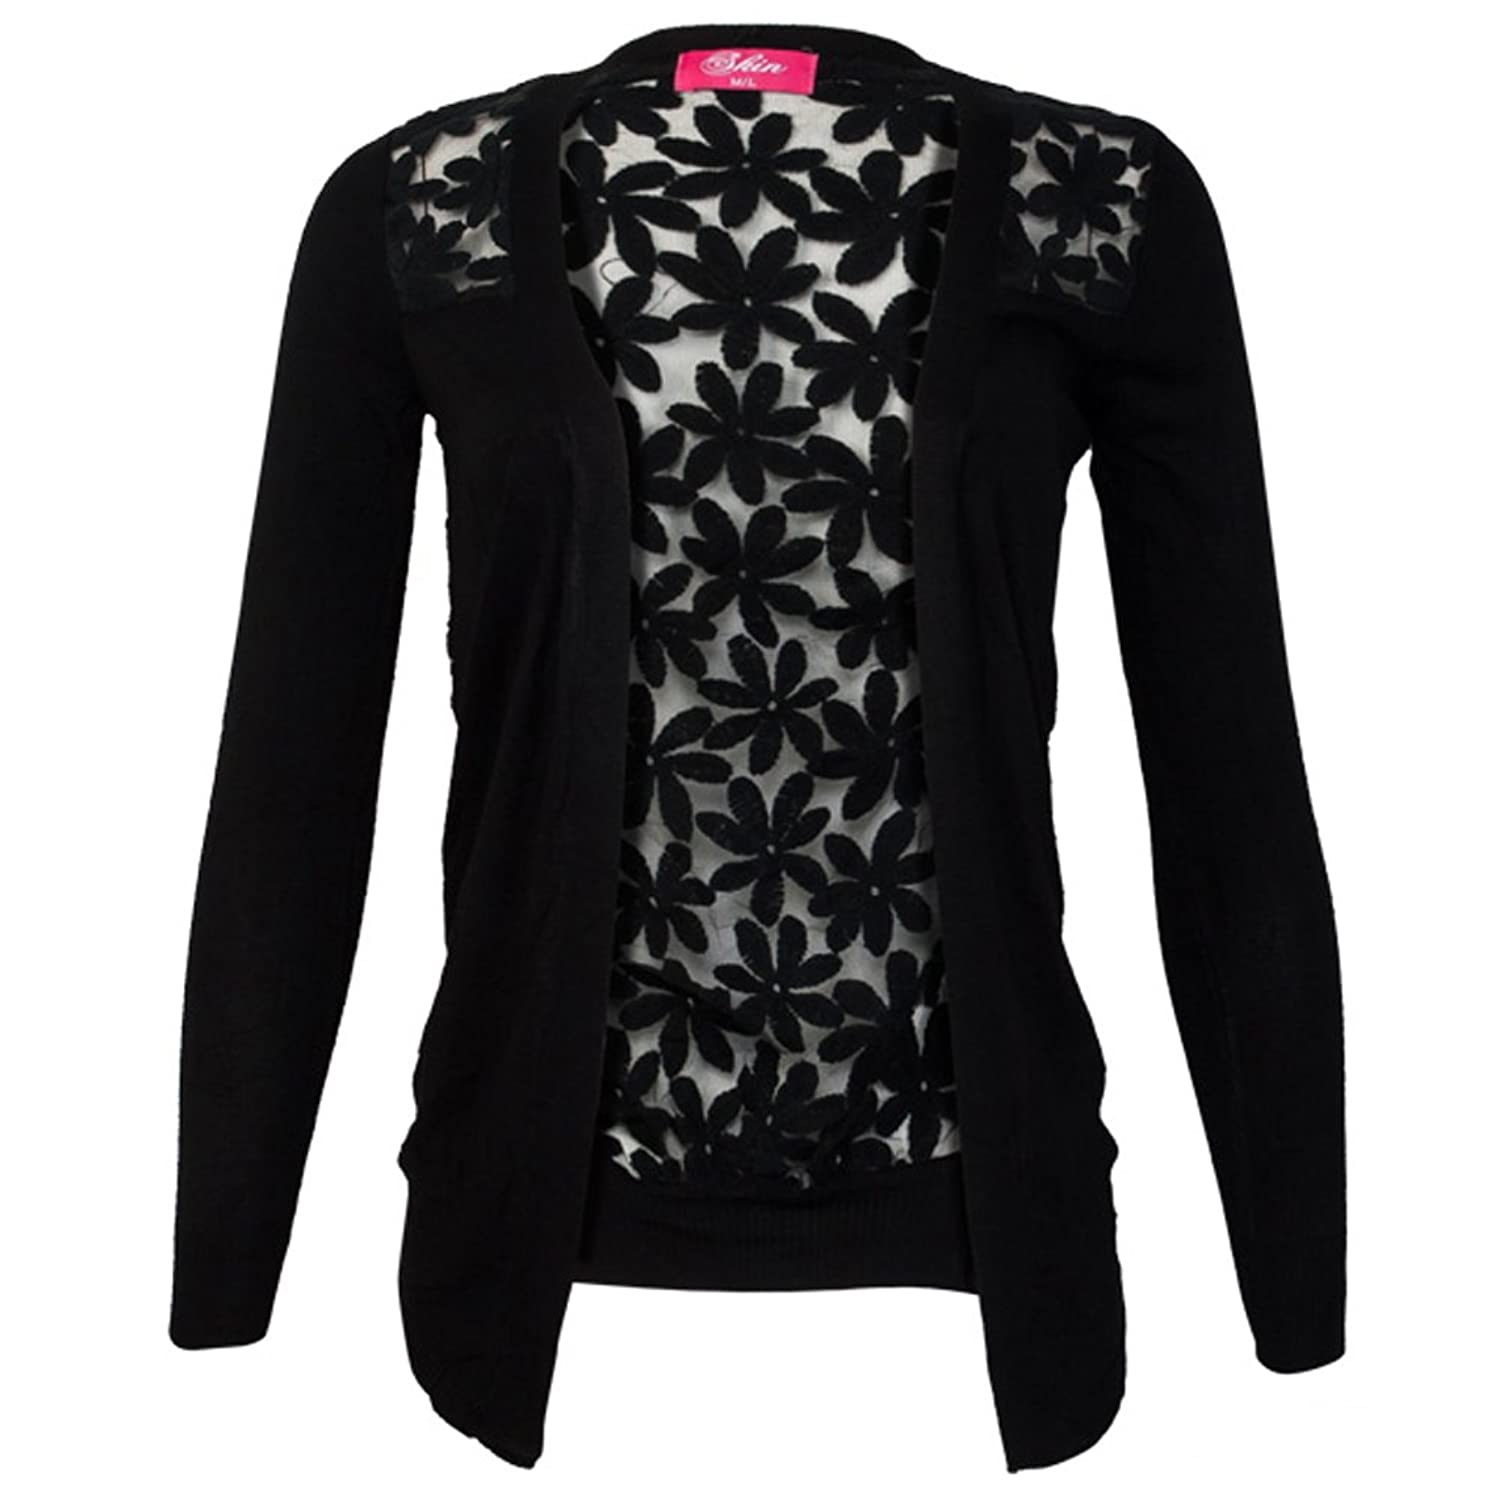 LOCOMO Floral See Through Back Sheer Long Sleeve Cardigan Black ...